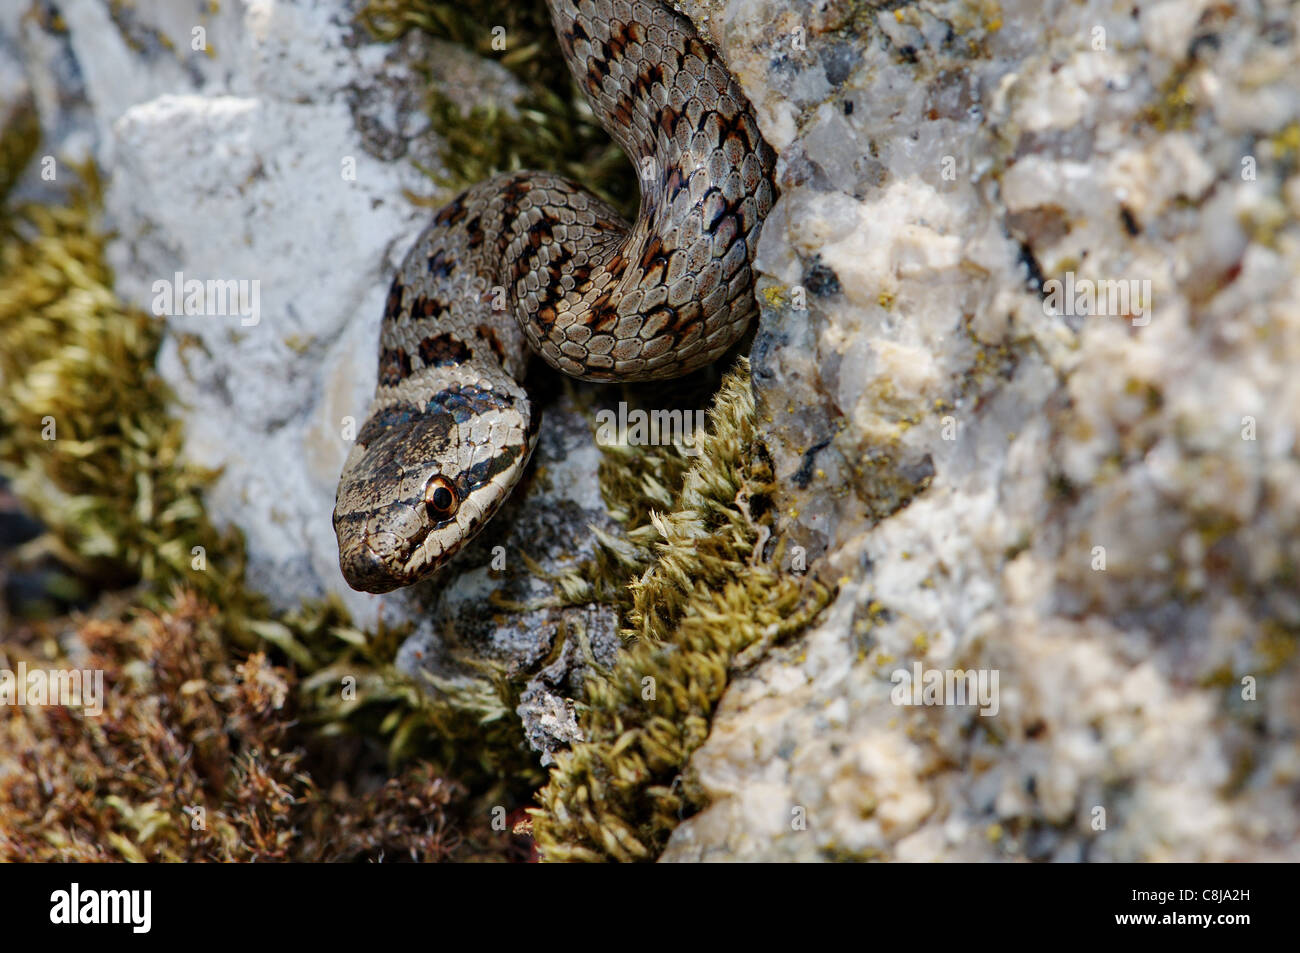 smooth snake, Coronella austriaca, snake, snakes, reptile, reptiles, portrait, protected, endangered, indigenous, - Stock Image